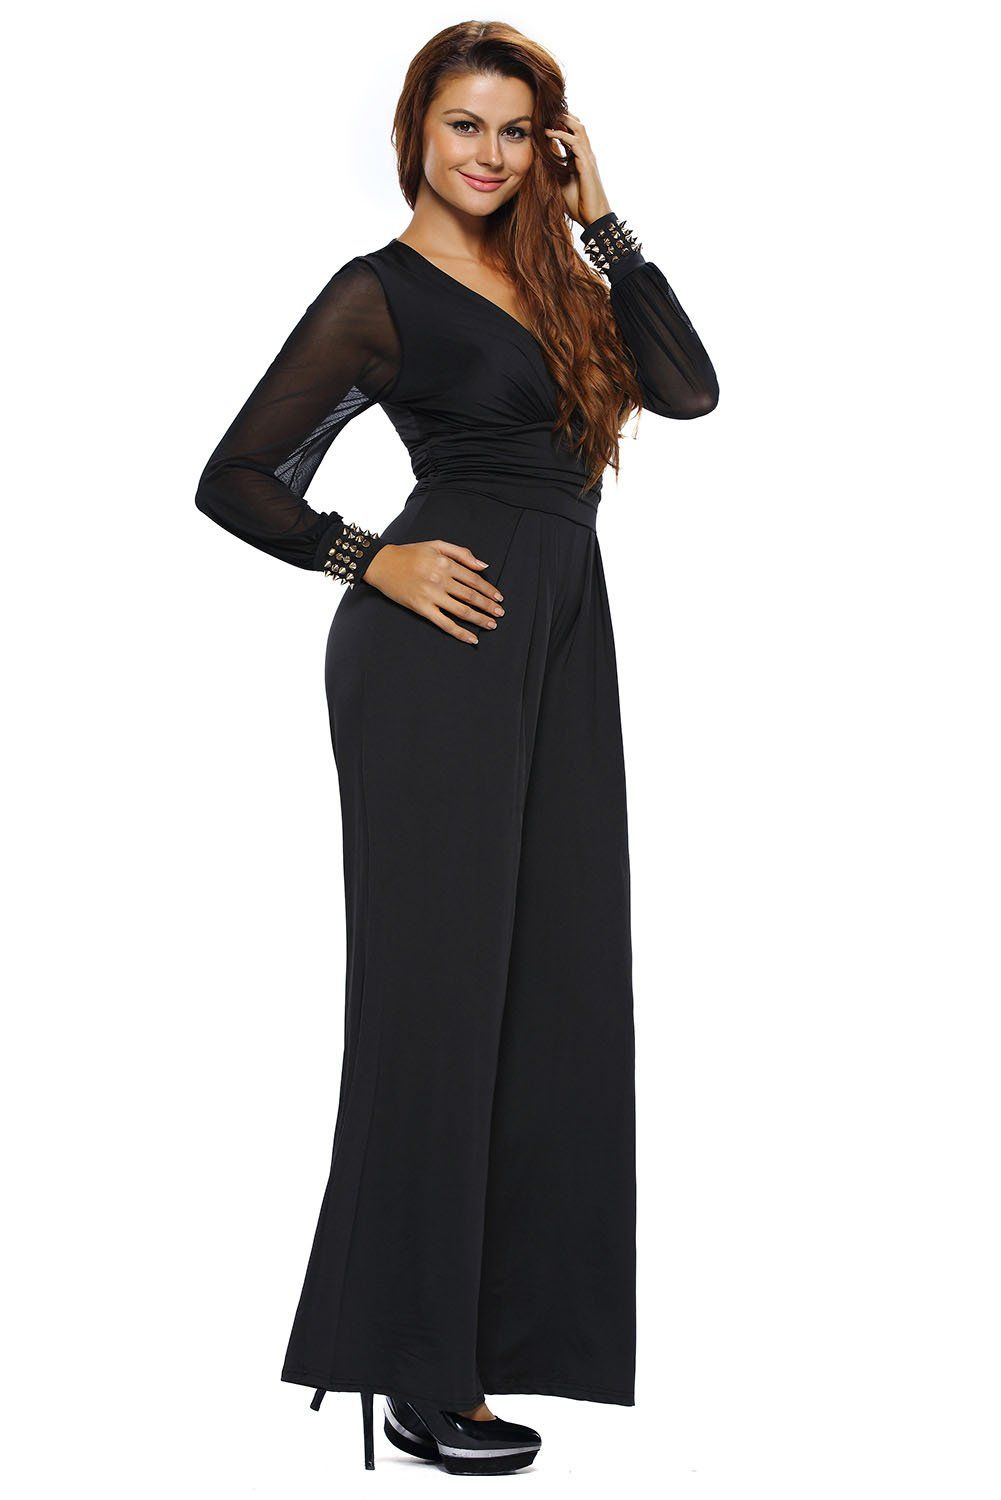 9af9b2c3dff6 Womens Embellished Cuffs Wide Leg Long Mesh Sleeves Party Cocktail Formal  Jumpsuit Rompers Pants     You can find out more details at the link of the  image.